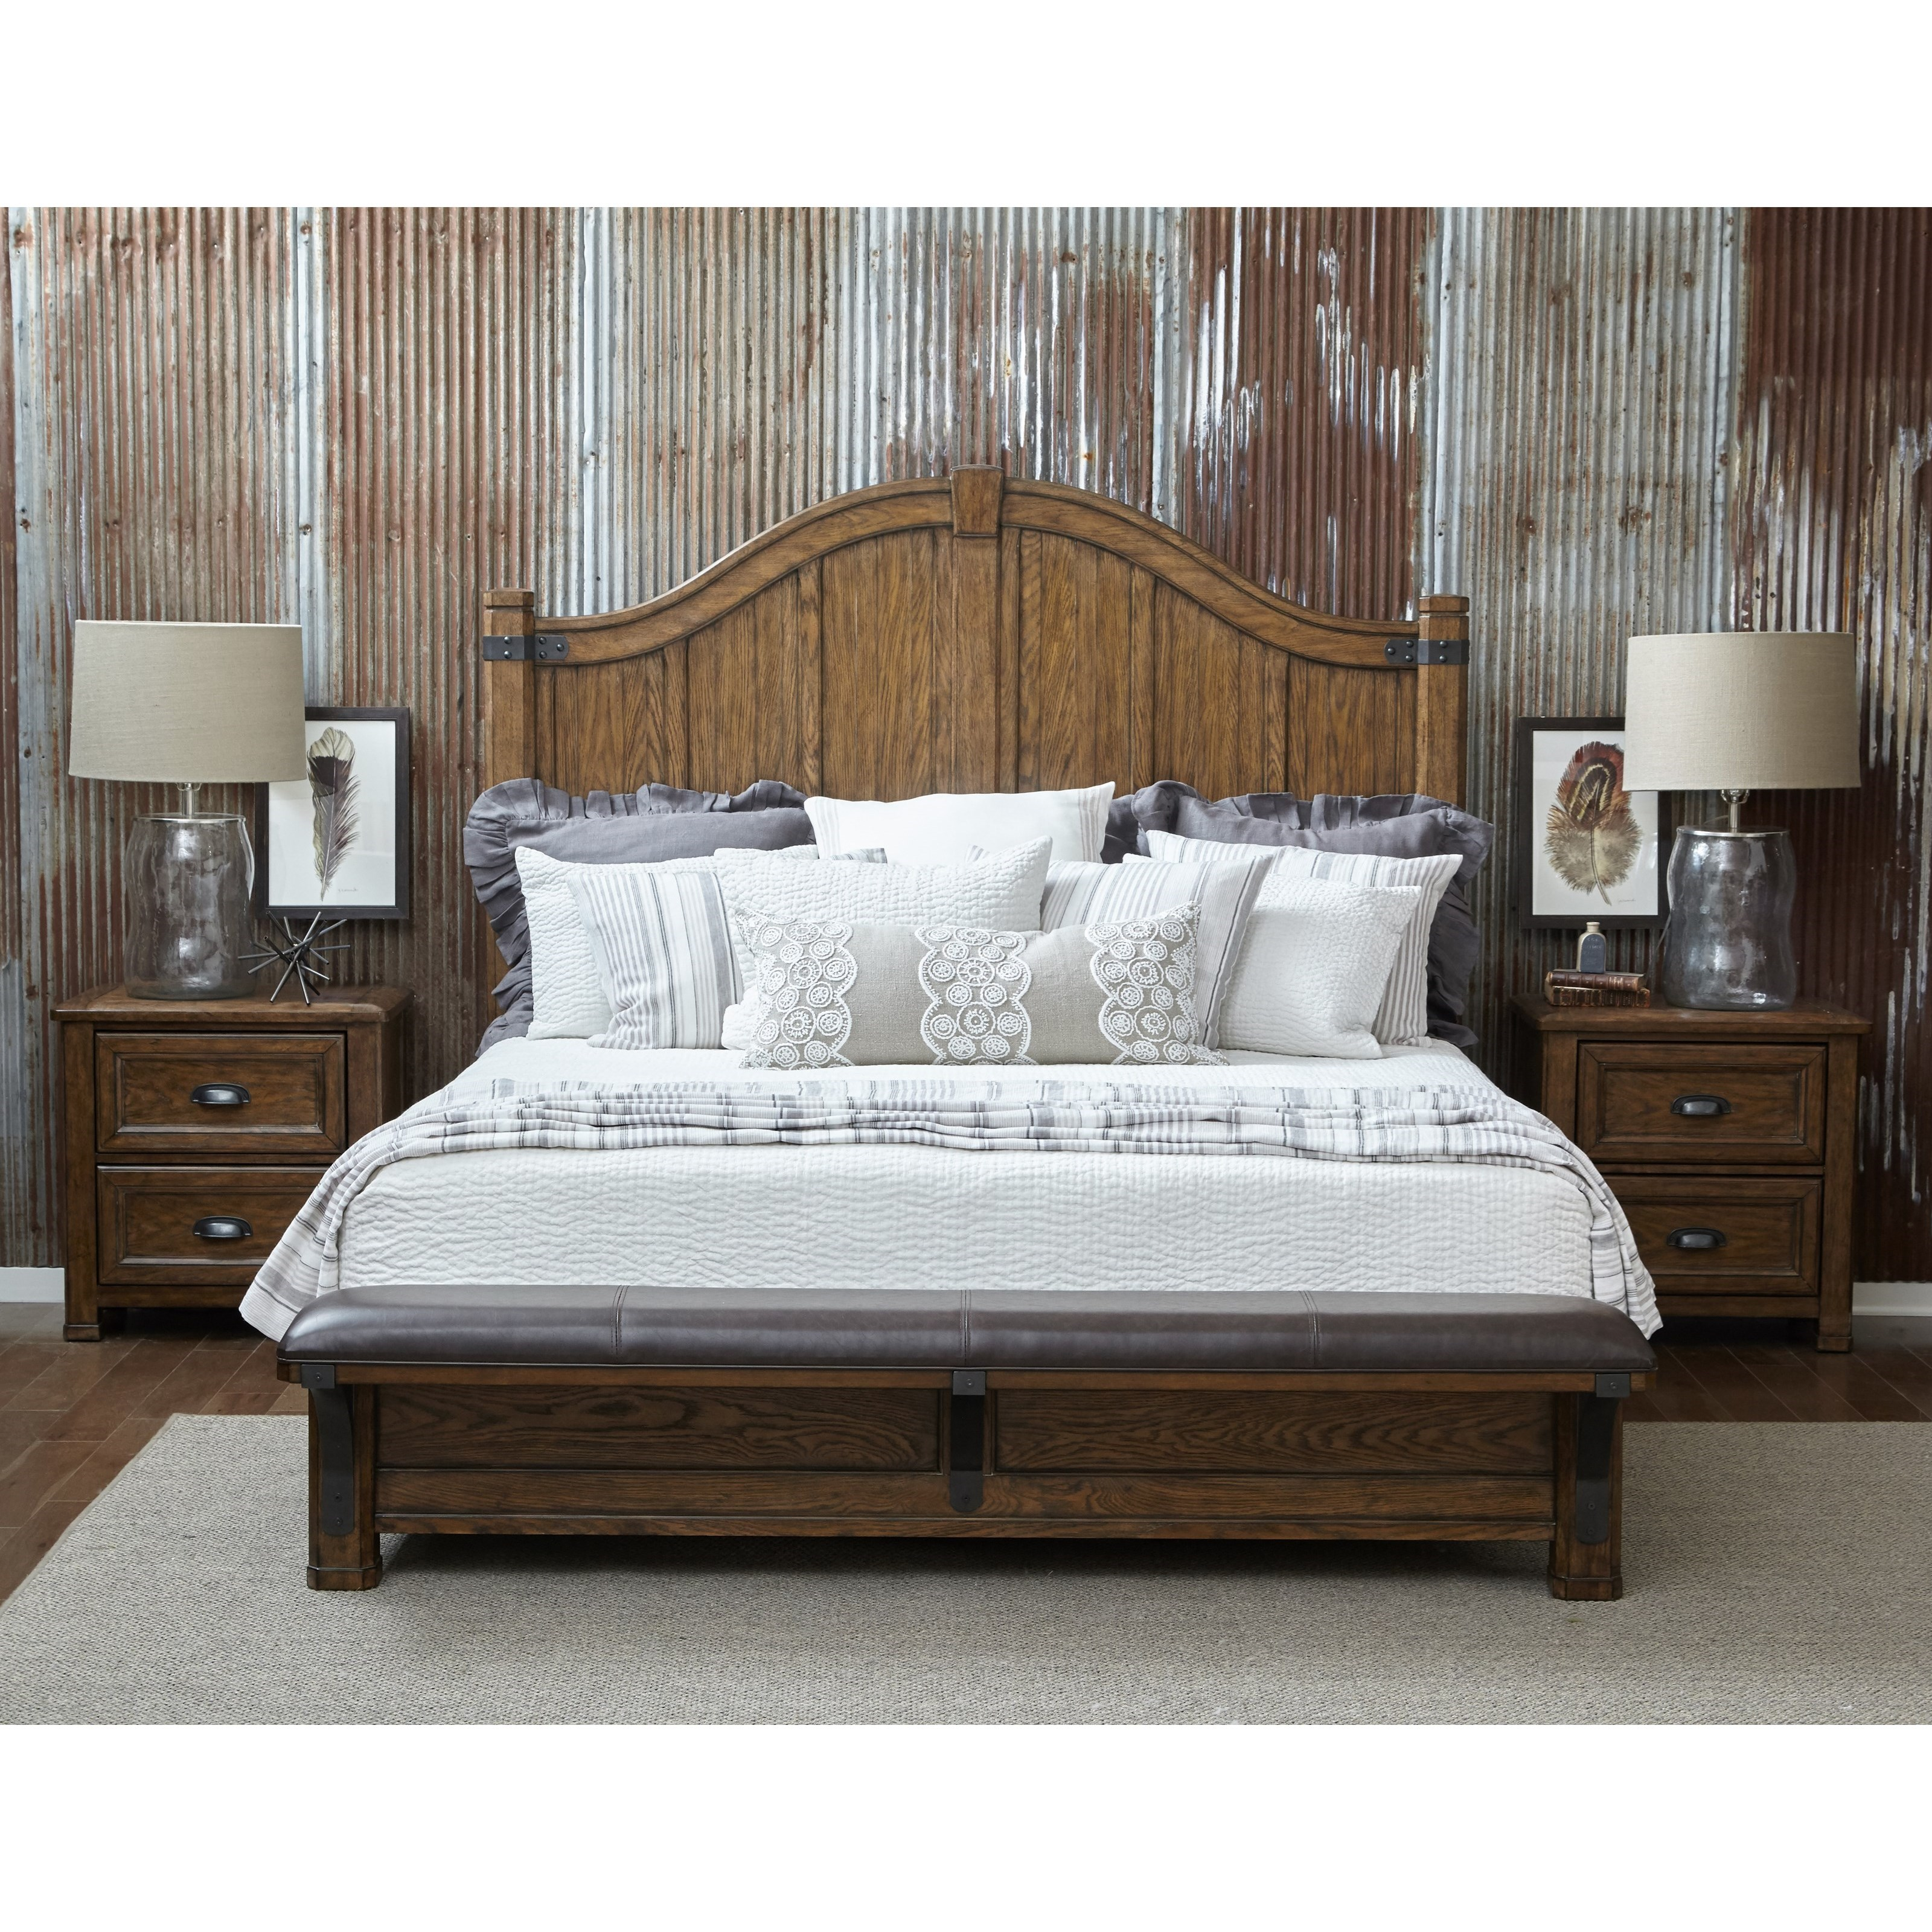 Eric Churchu0027s Highway To Home By Pulaski Eric Church Heartland Falls Queen  Bedroom Group   Item